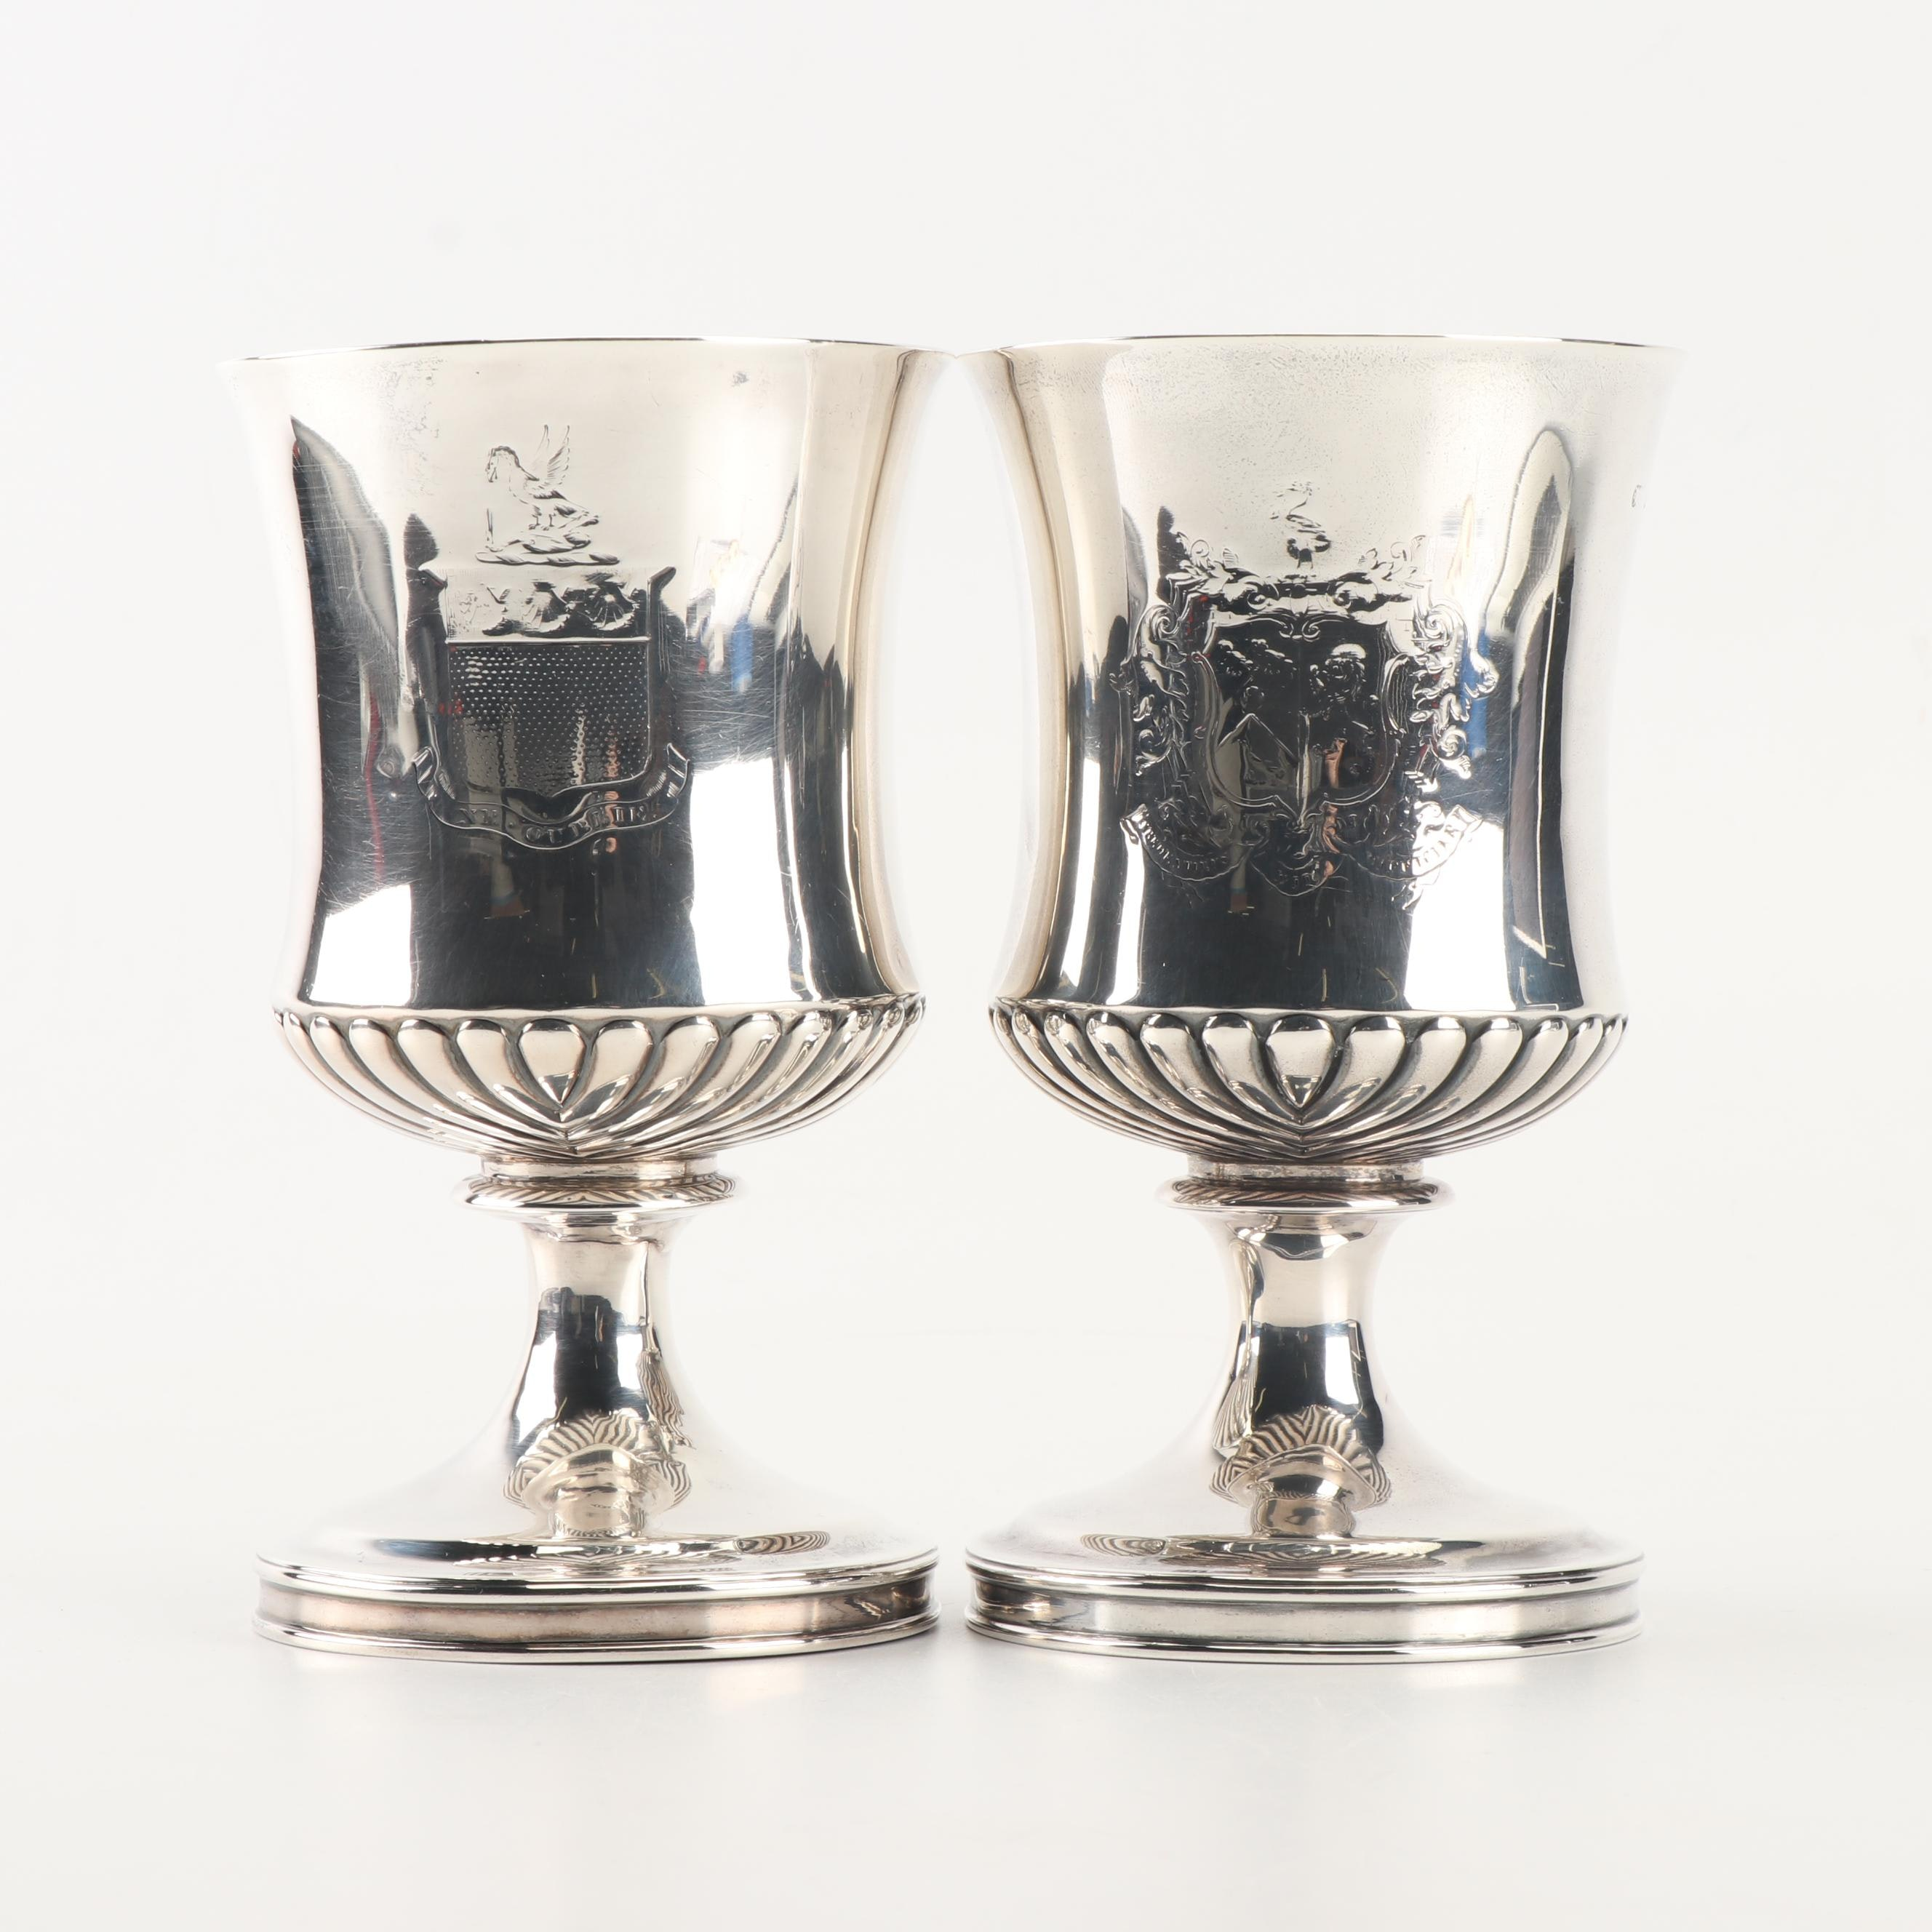 Pair of George III Silver Goblets, London 1814